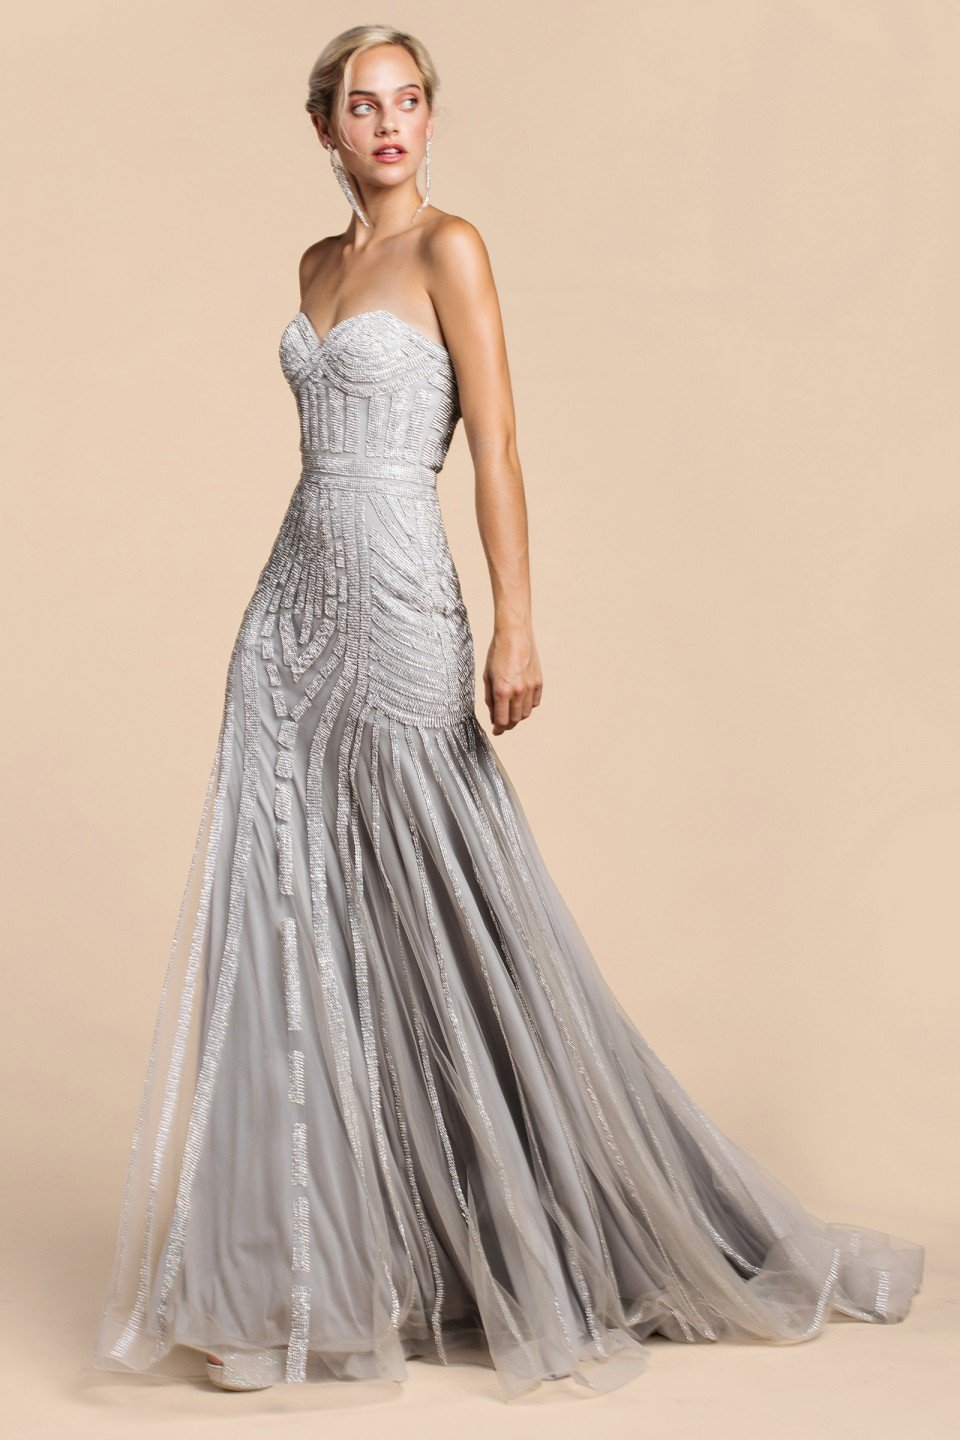 710e25ae768f silver beaded long prom dress. I love the way the dress drapes